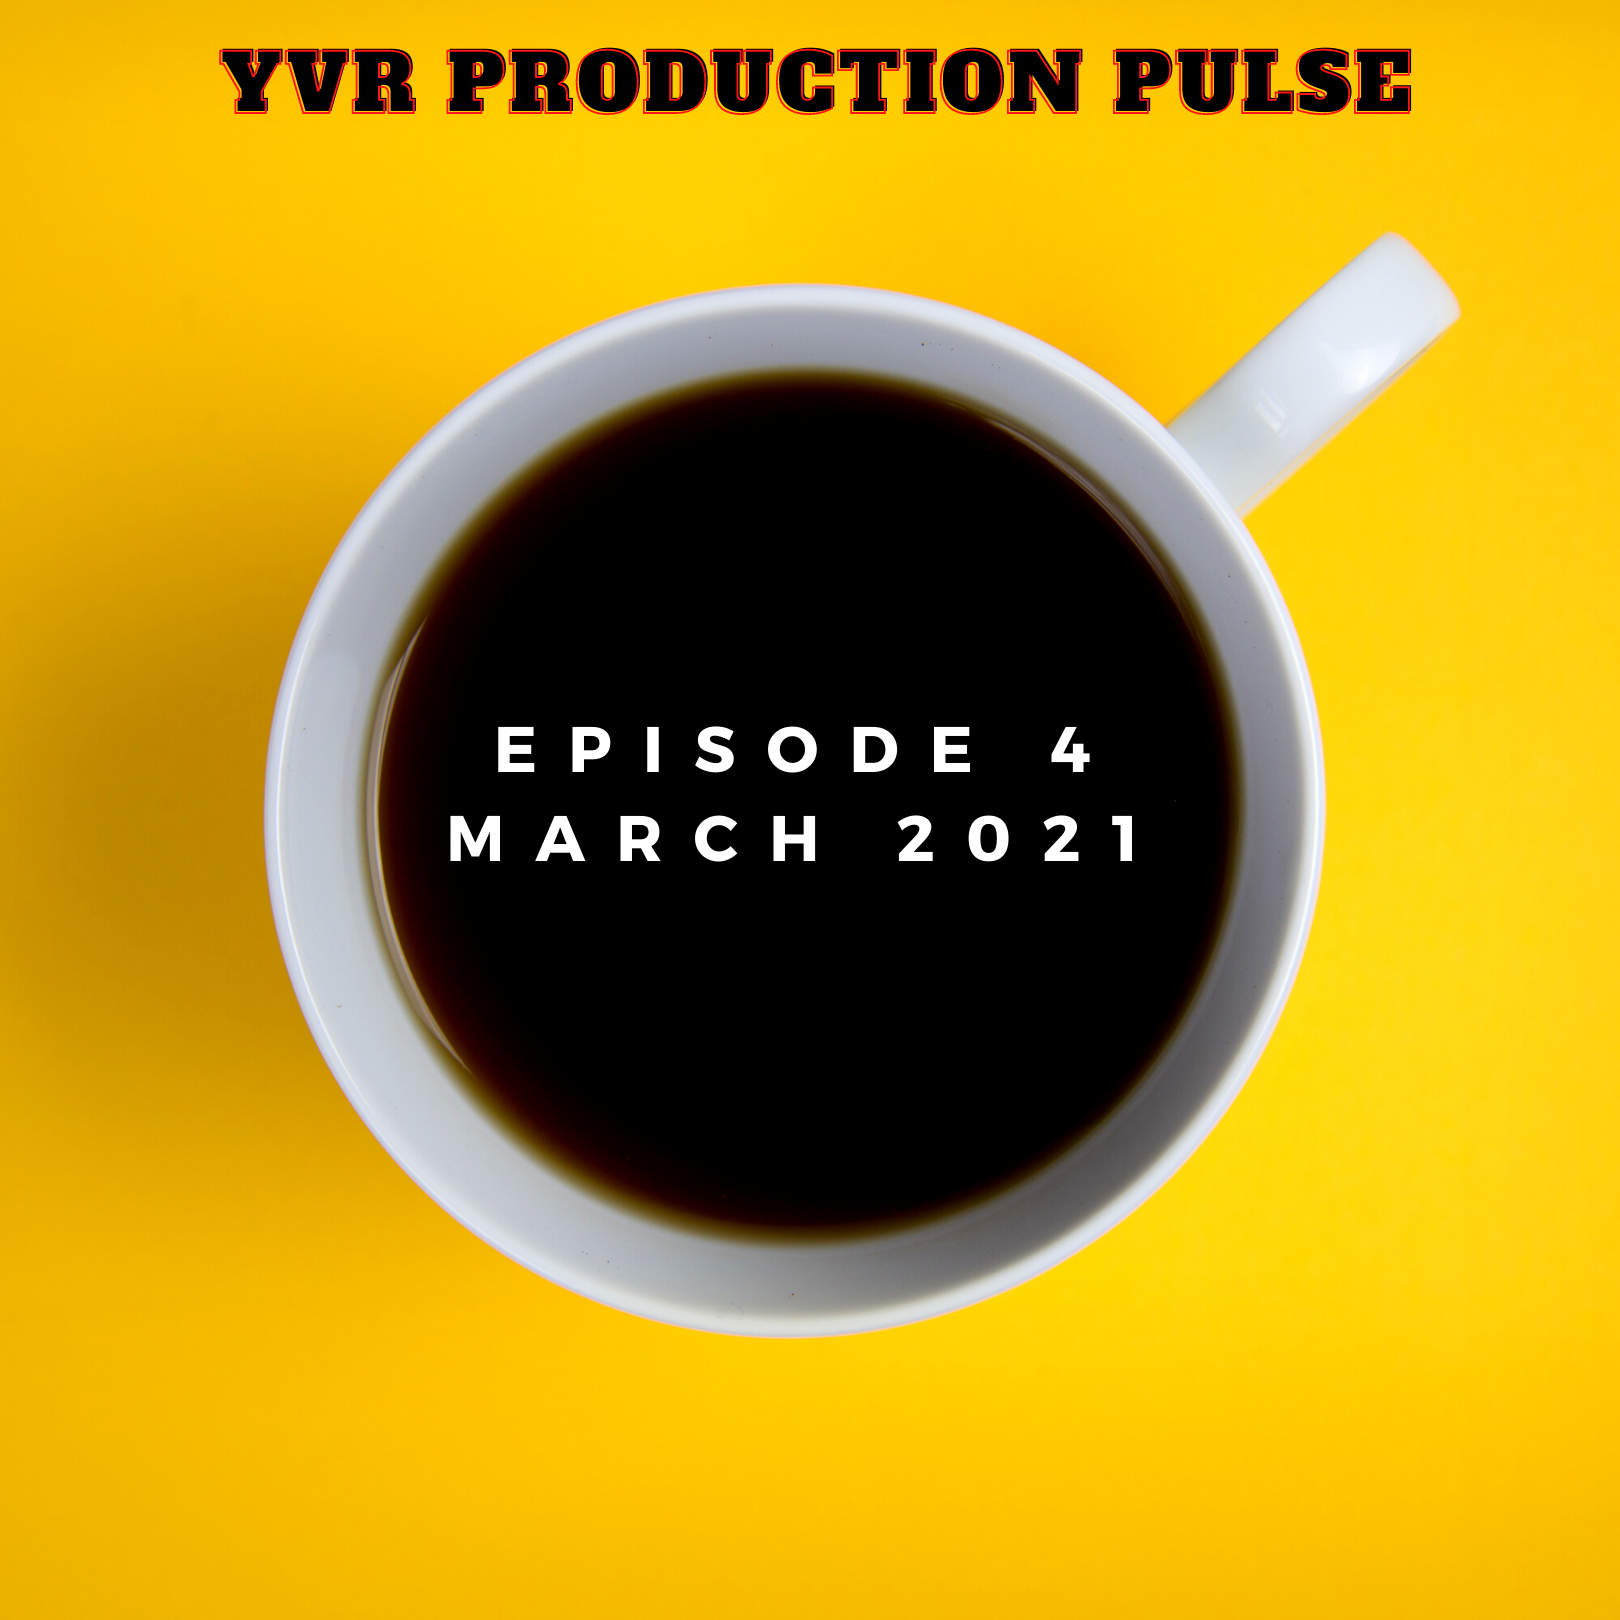 YVR Production Pulse Episode 4 March 2021